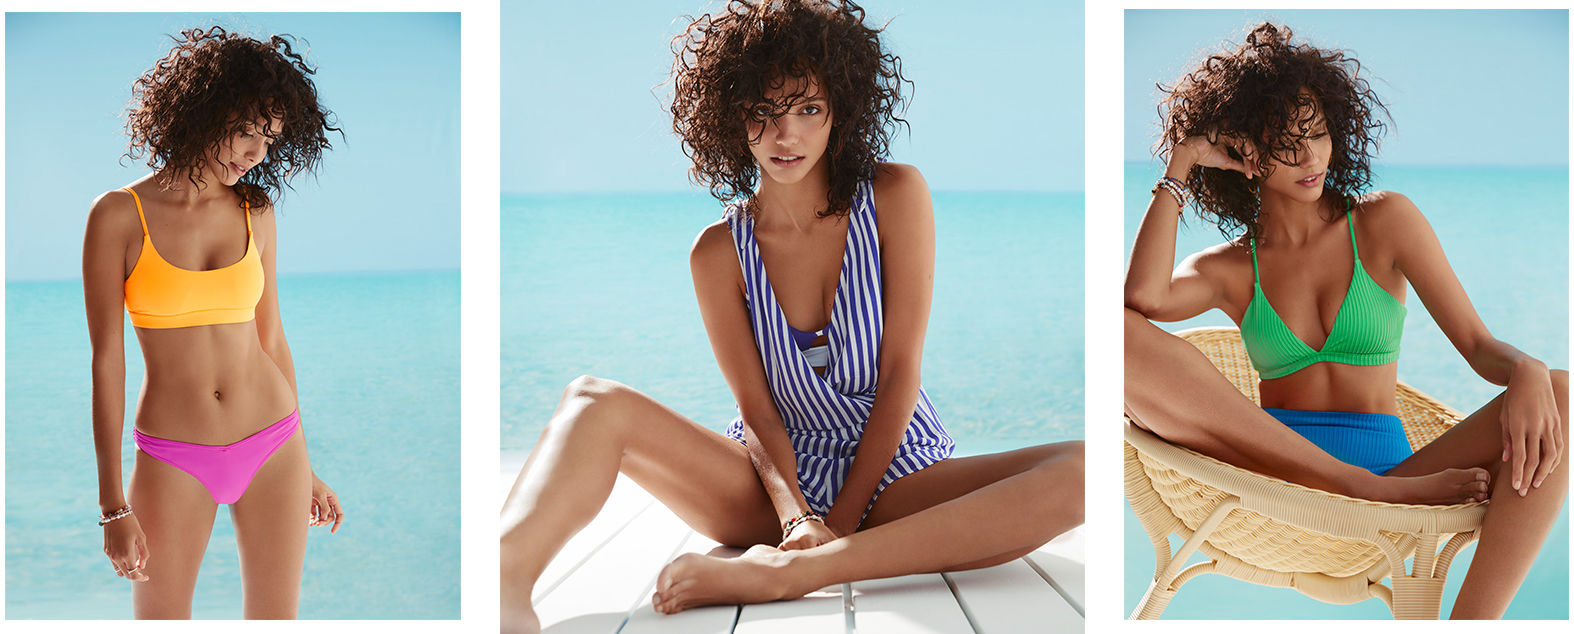 a9dce7dfa5 For those who want to relax to the max, we've got some great news. Our new  swimwear collections have arrived at Simons! And really, there's something  to ...